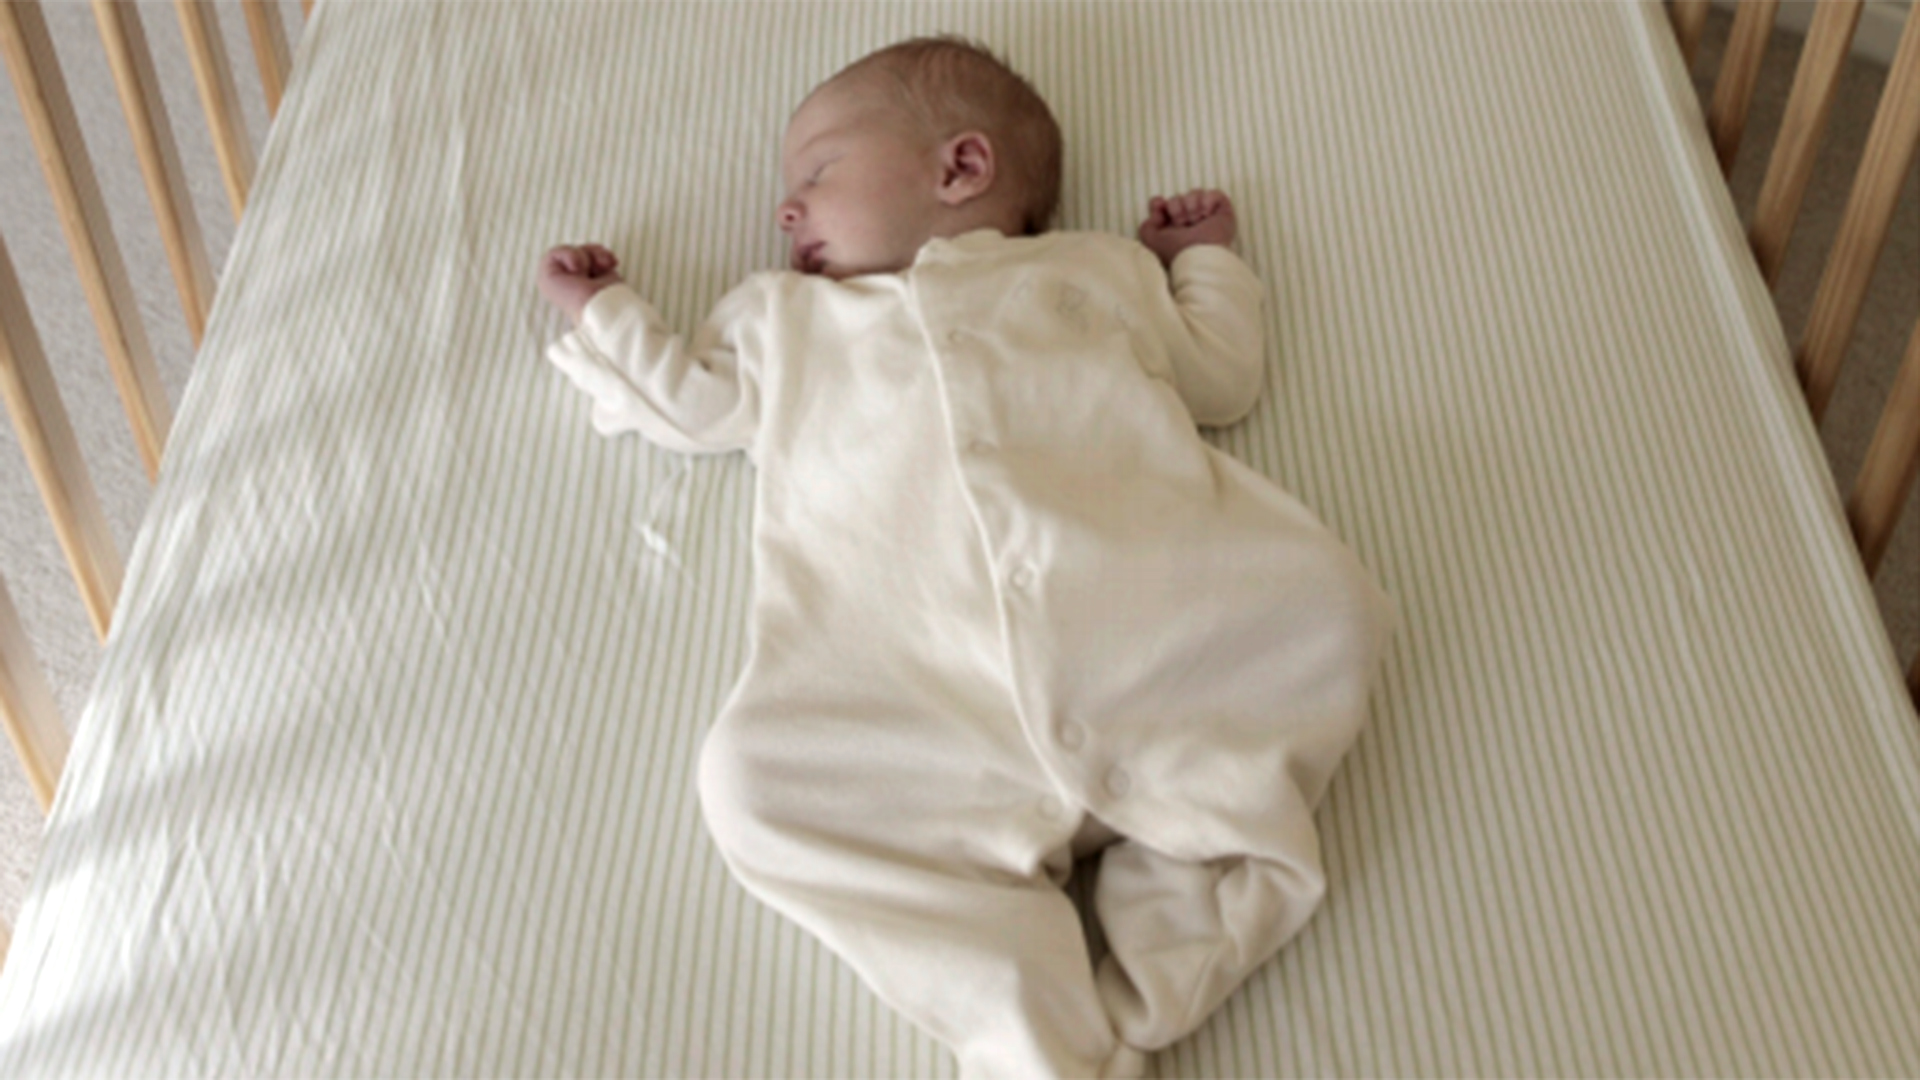 Baby Bassinet Deaths To Fight Sids Baby Should Sleep In Same Room As Parents